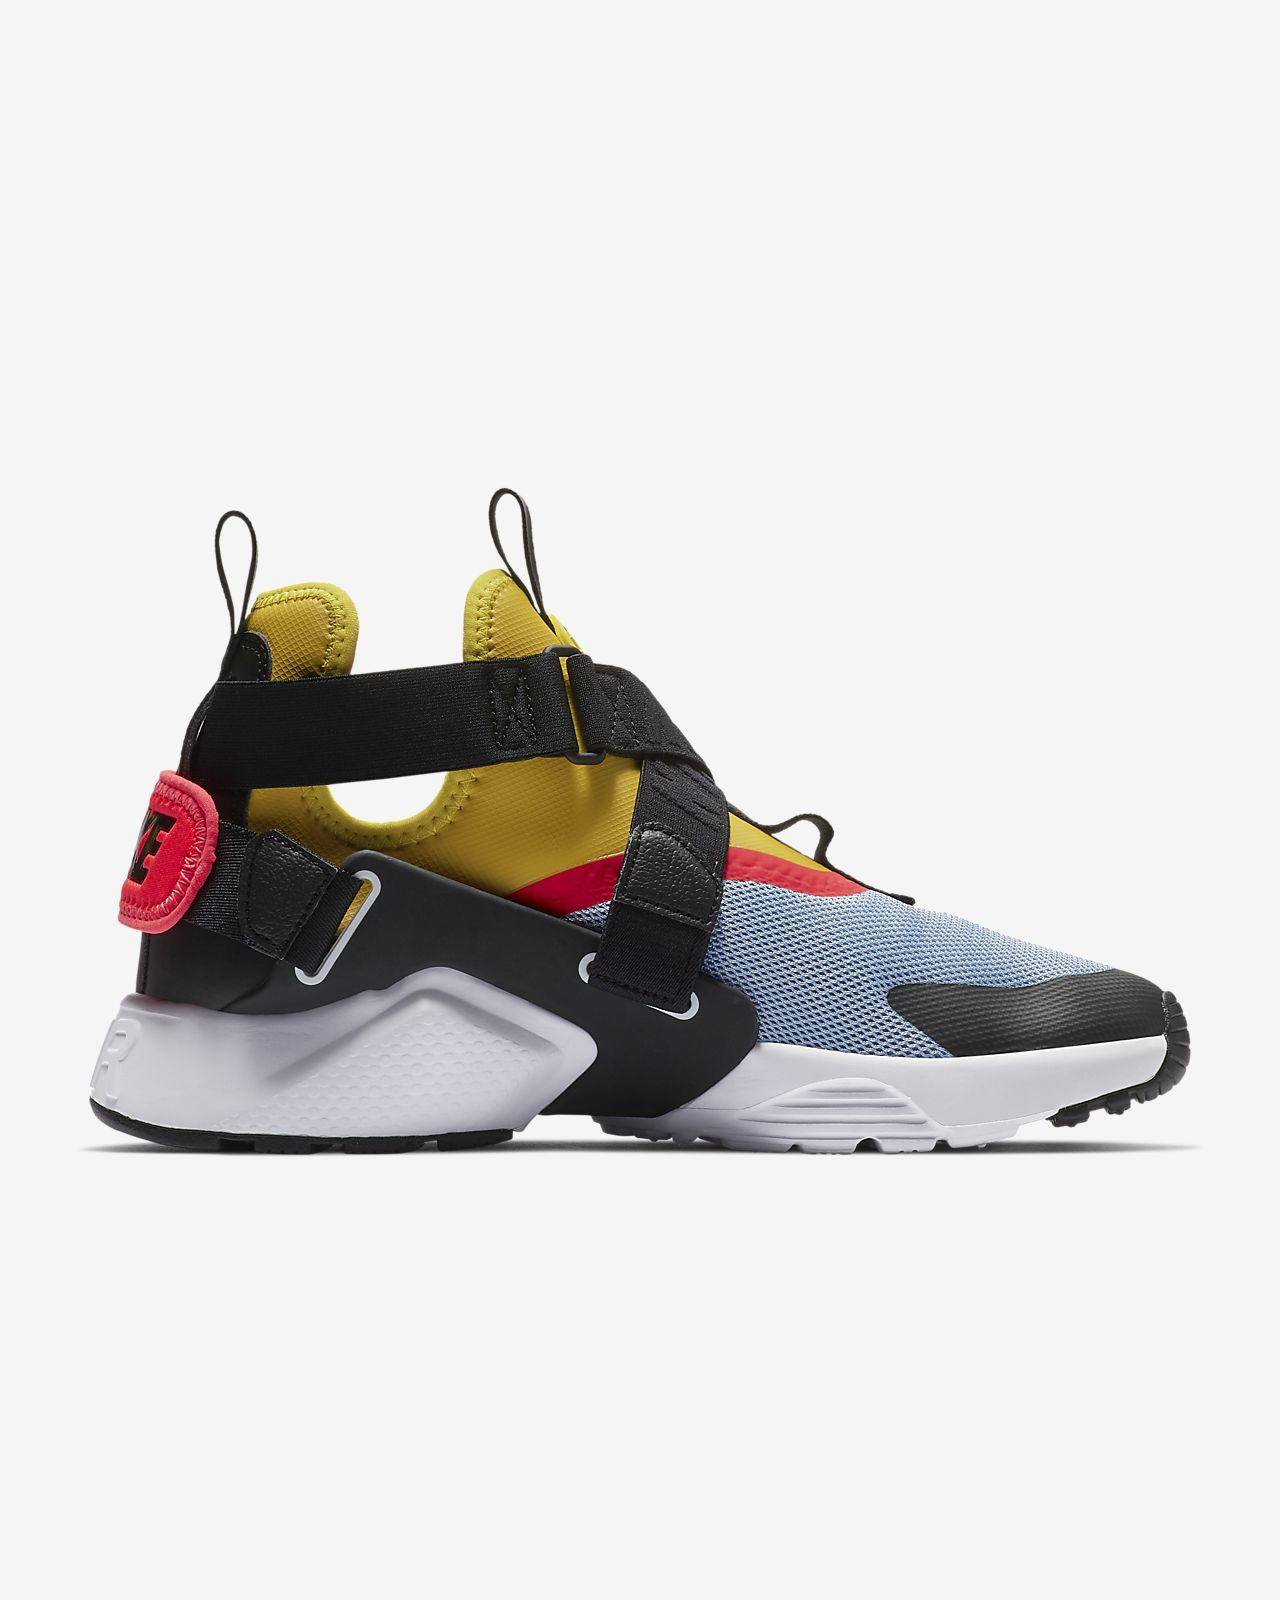 8512e9a1fa Low Resolution Nike Air Huarache City Women's Shoe Nike Air Huarache City  Women's Shoe